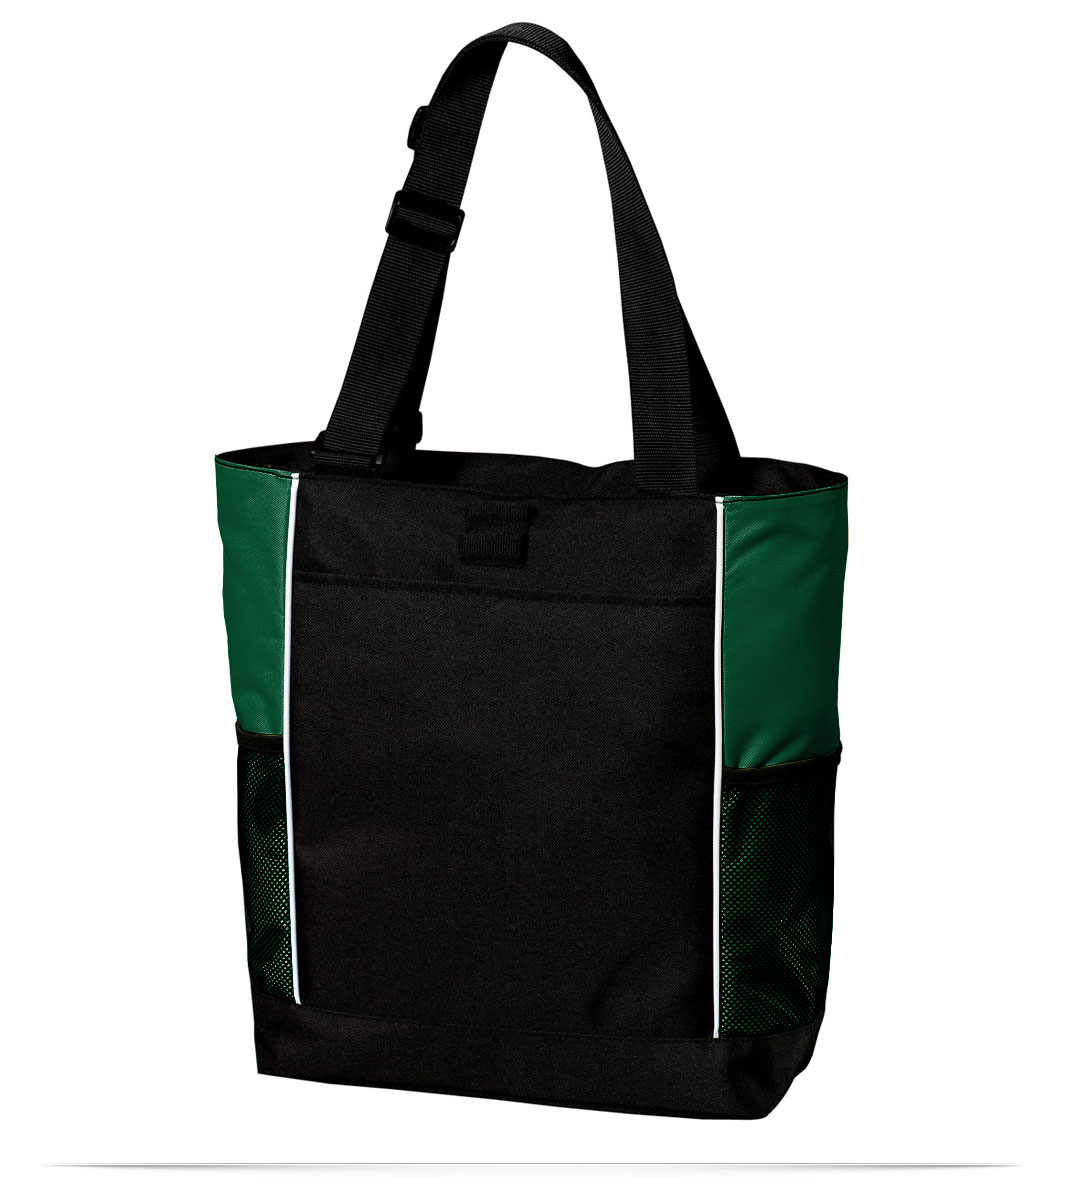 Personalized Custom Embroidered Tote Bag